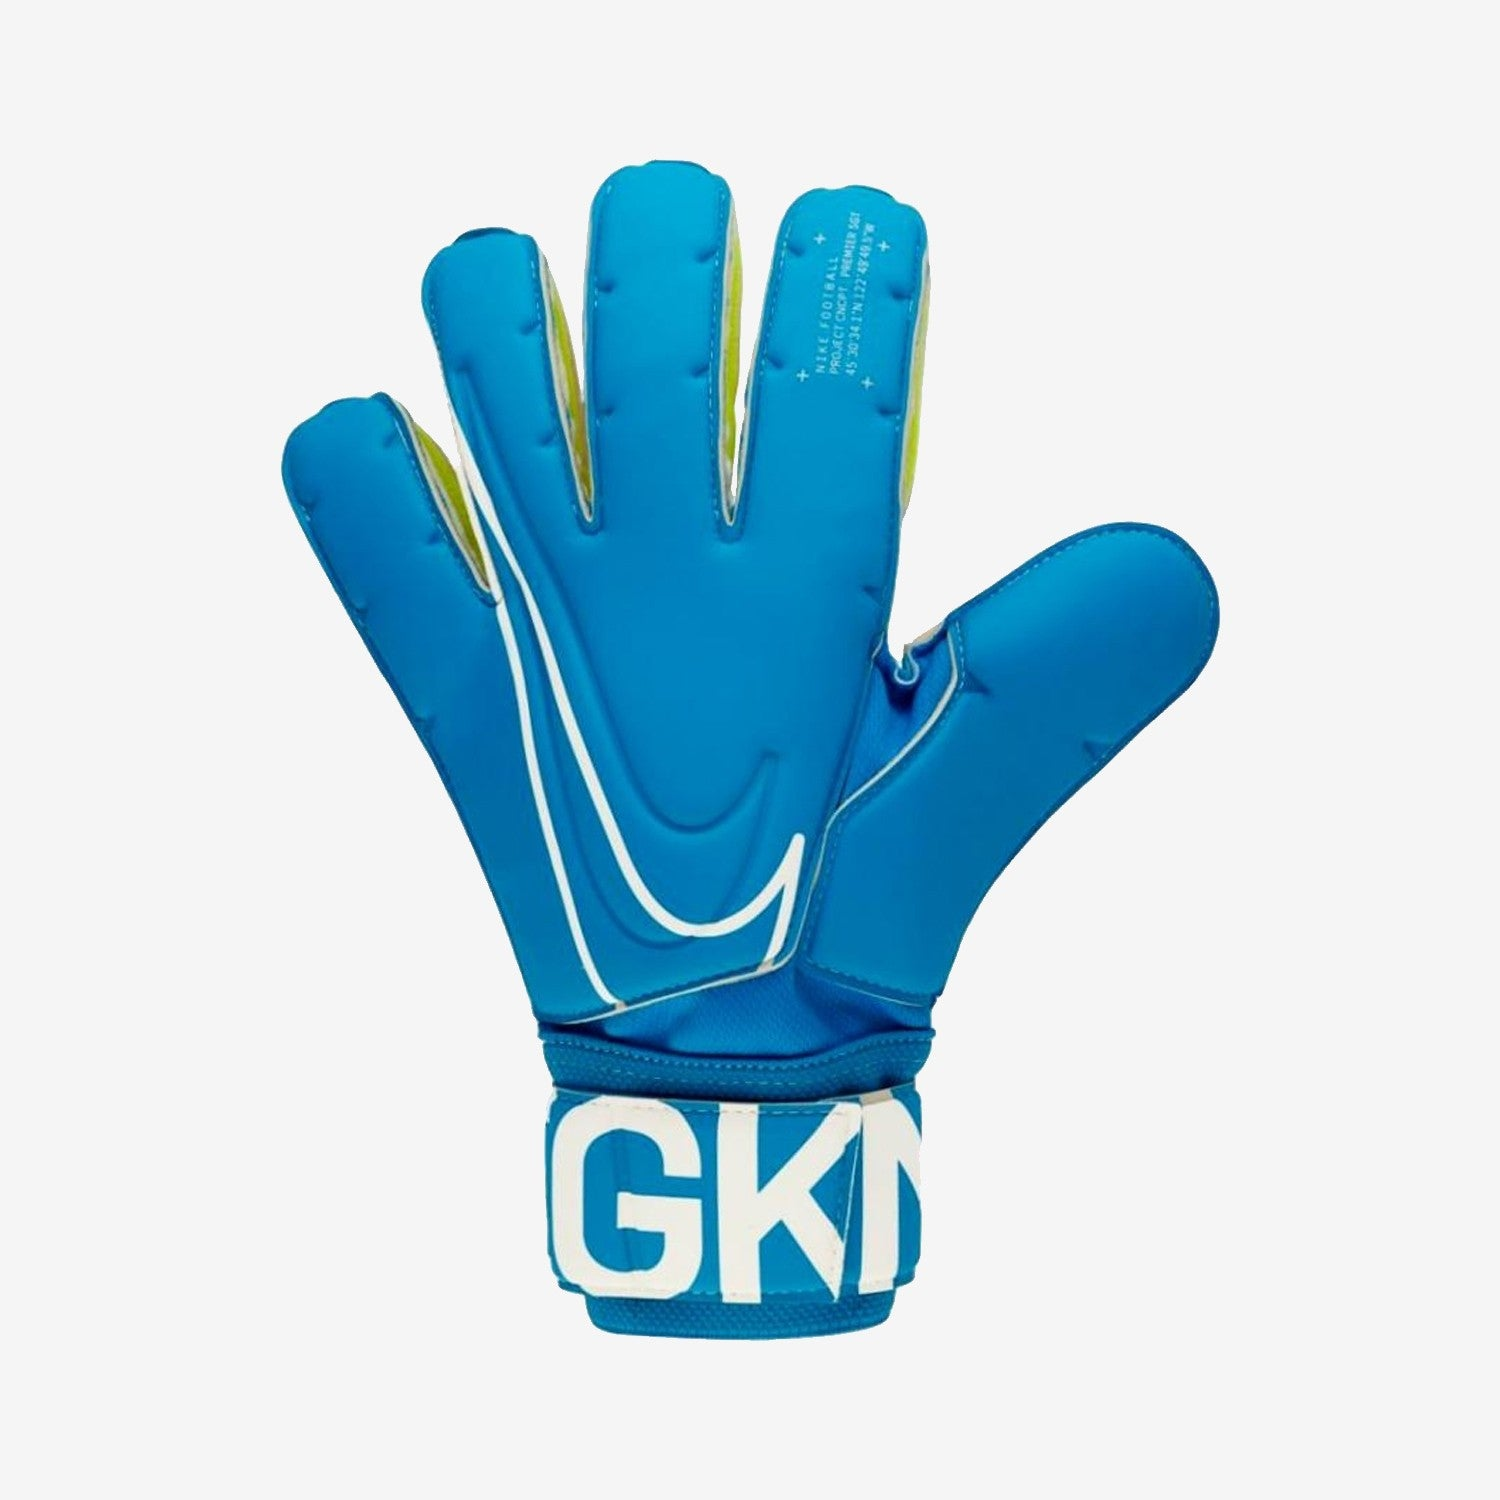 SGT Premier Goalkeeper Gloves - Blue/White